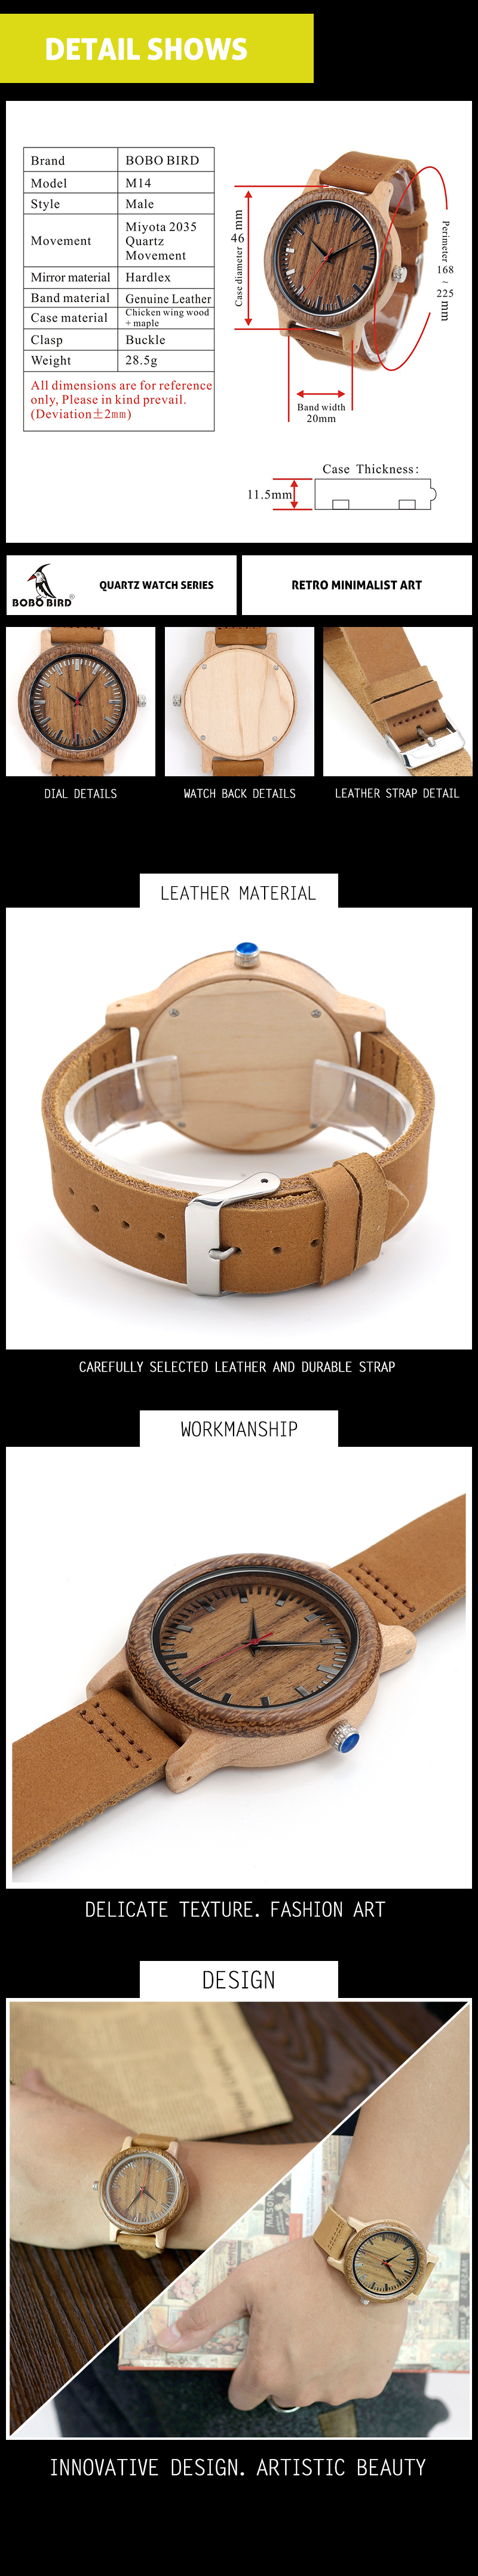 M14brown watches